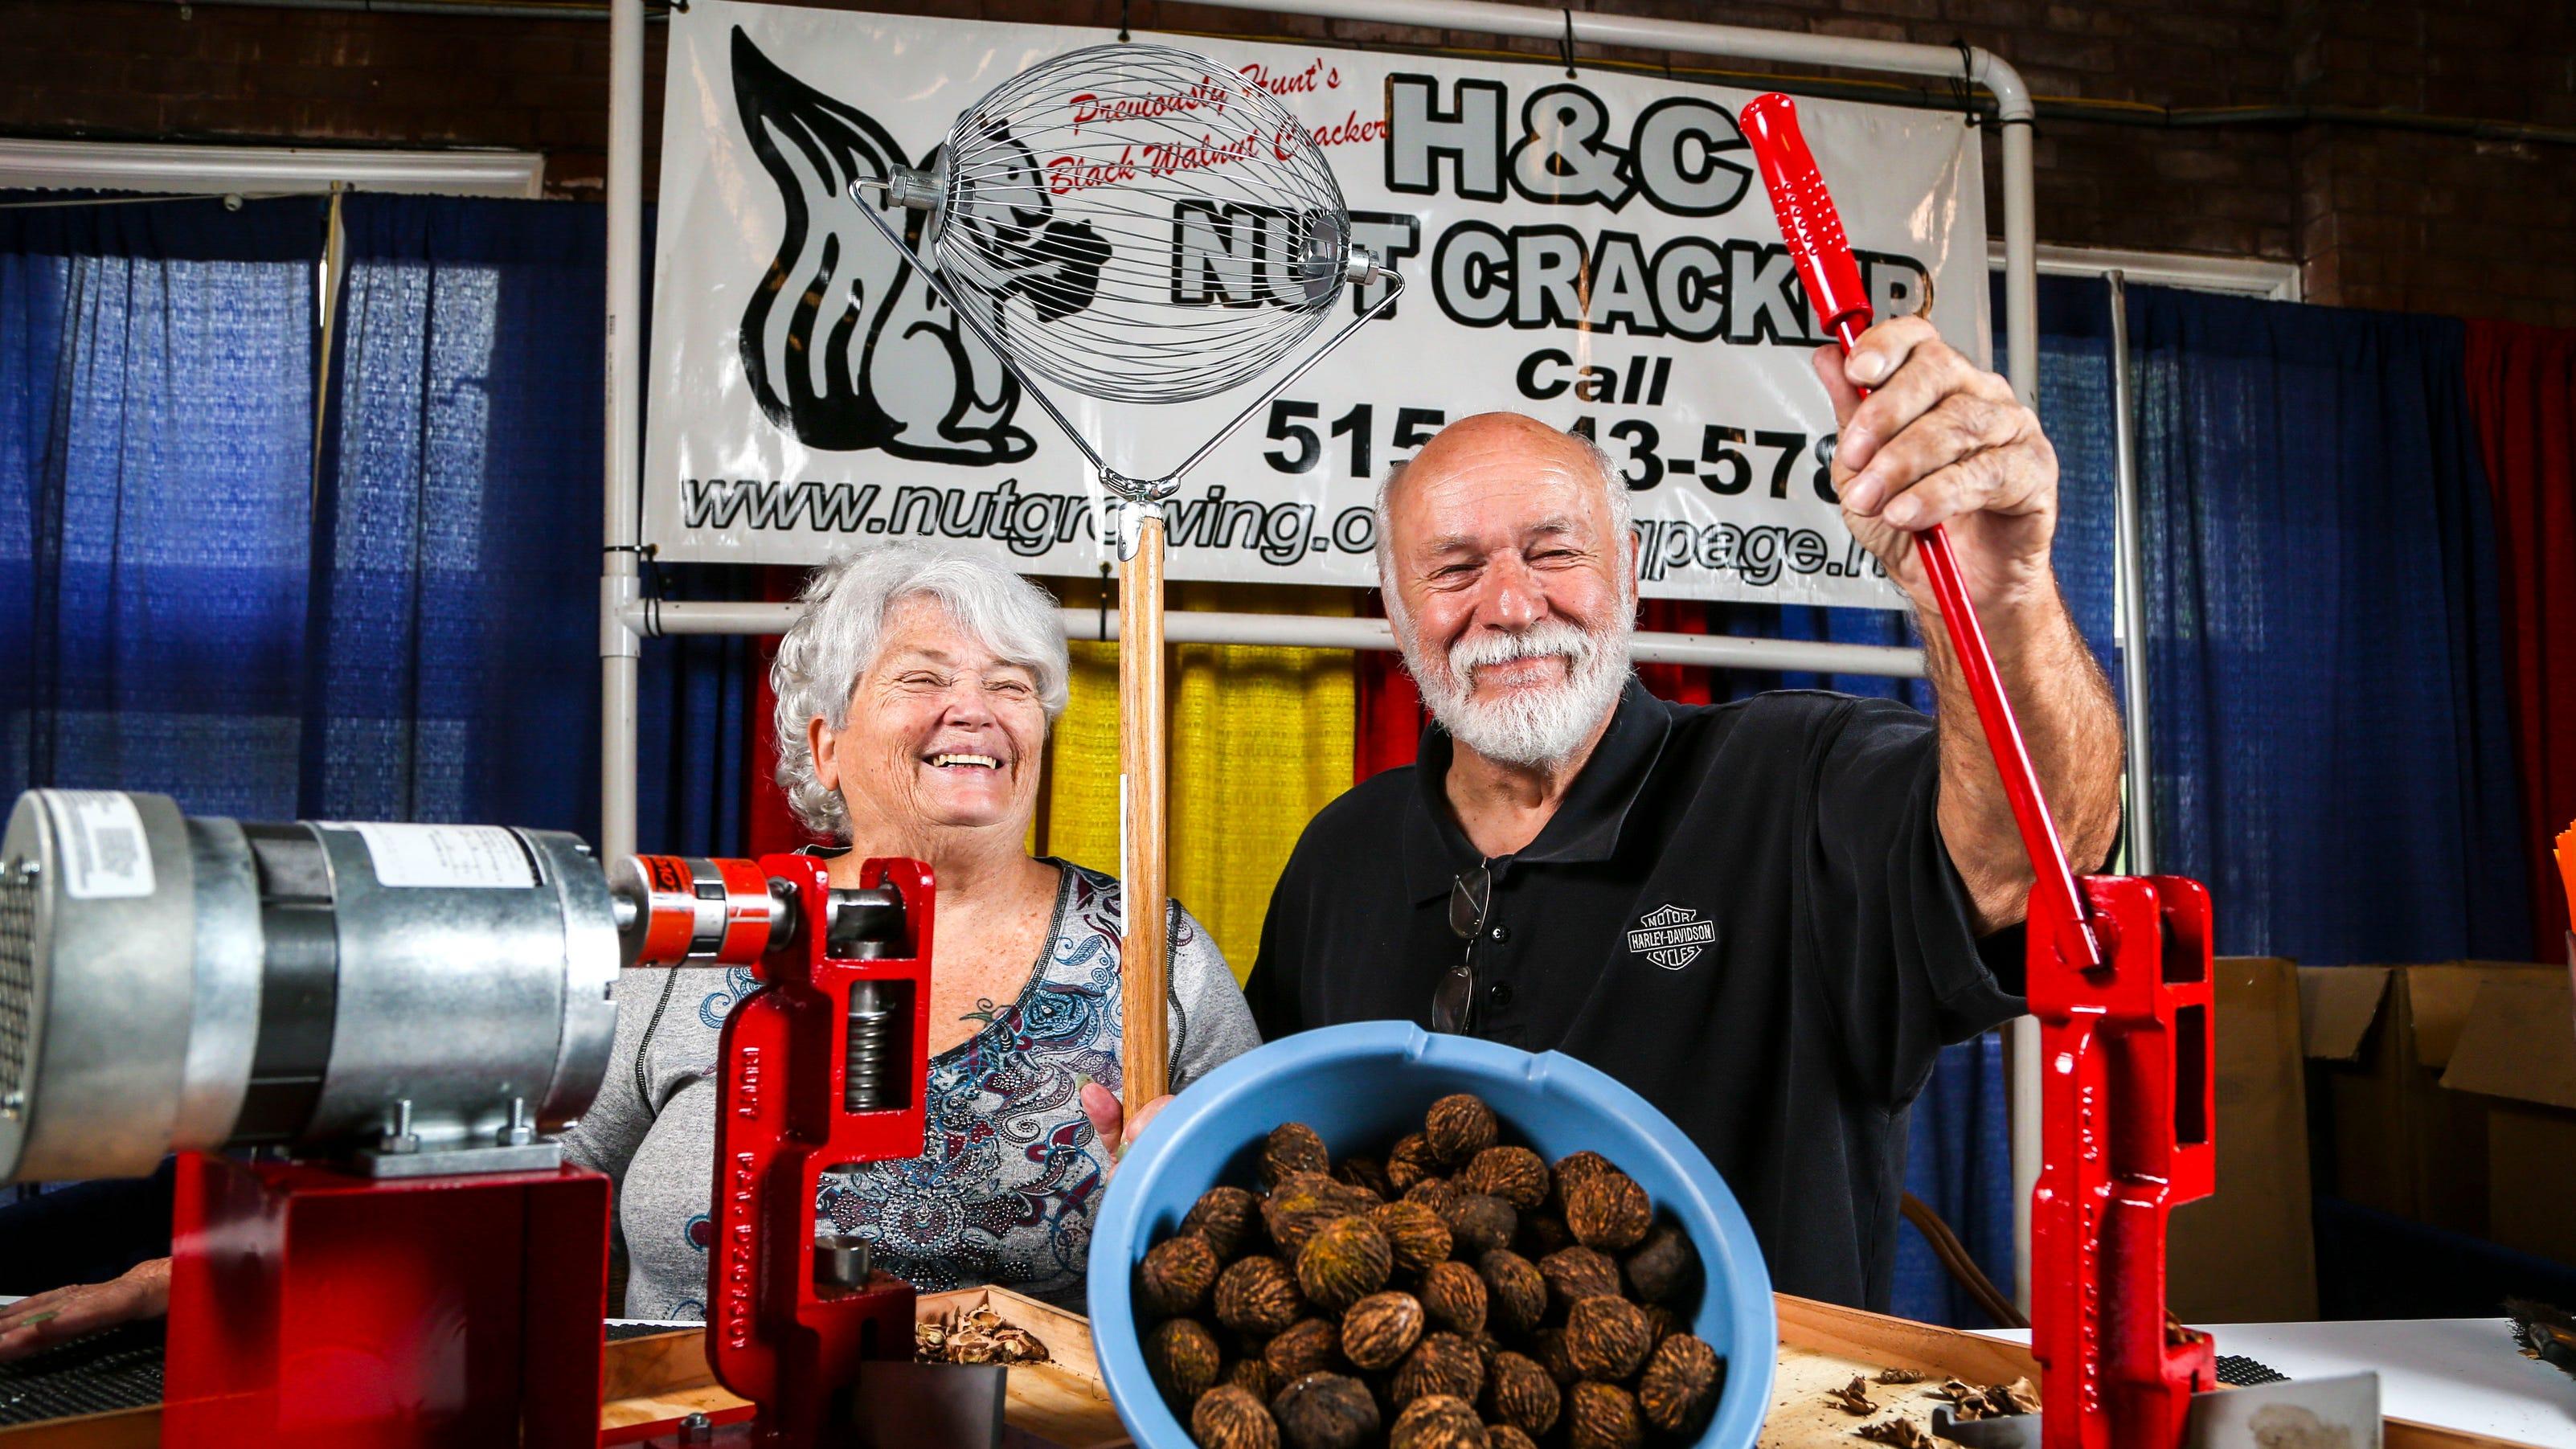 Merchandise craft vendors set up shop at iowa state fair for Iowa largest craft show